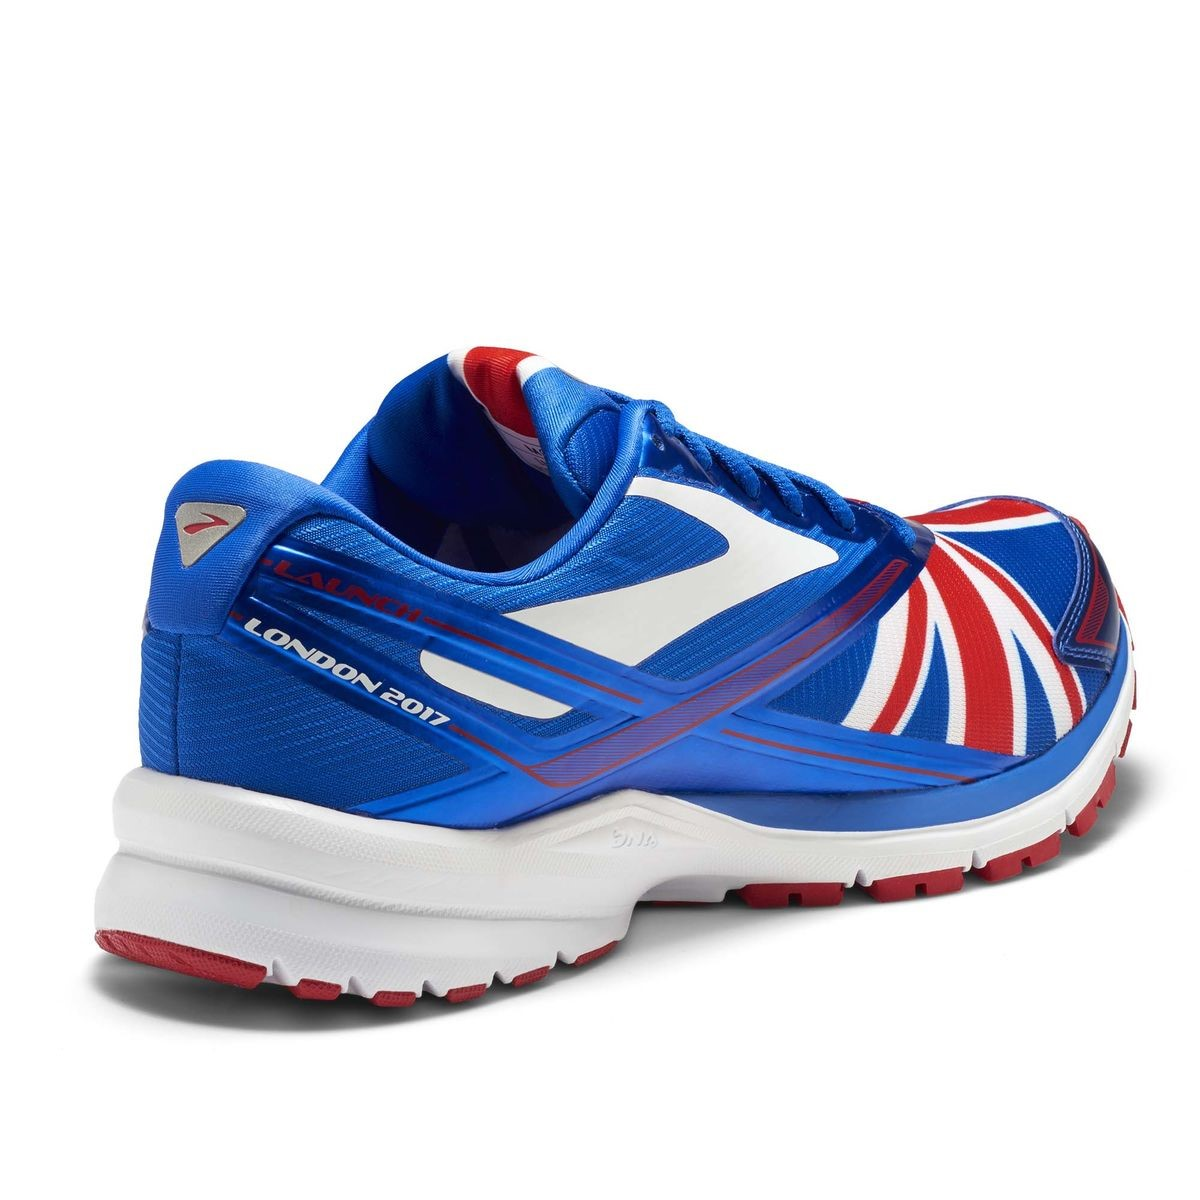 00a7992376ffd Brooks Launch 4 London - Limited Edition - Mens Running Shoes - Electric  Brooks Blue